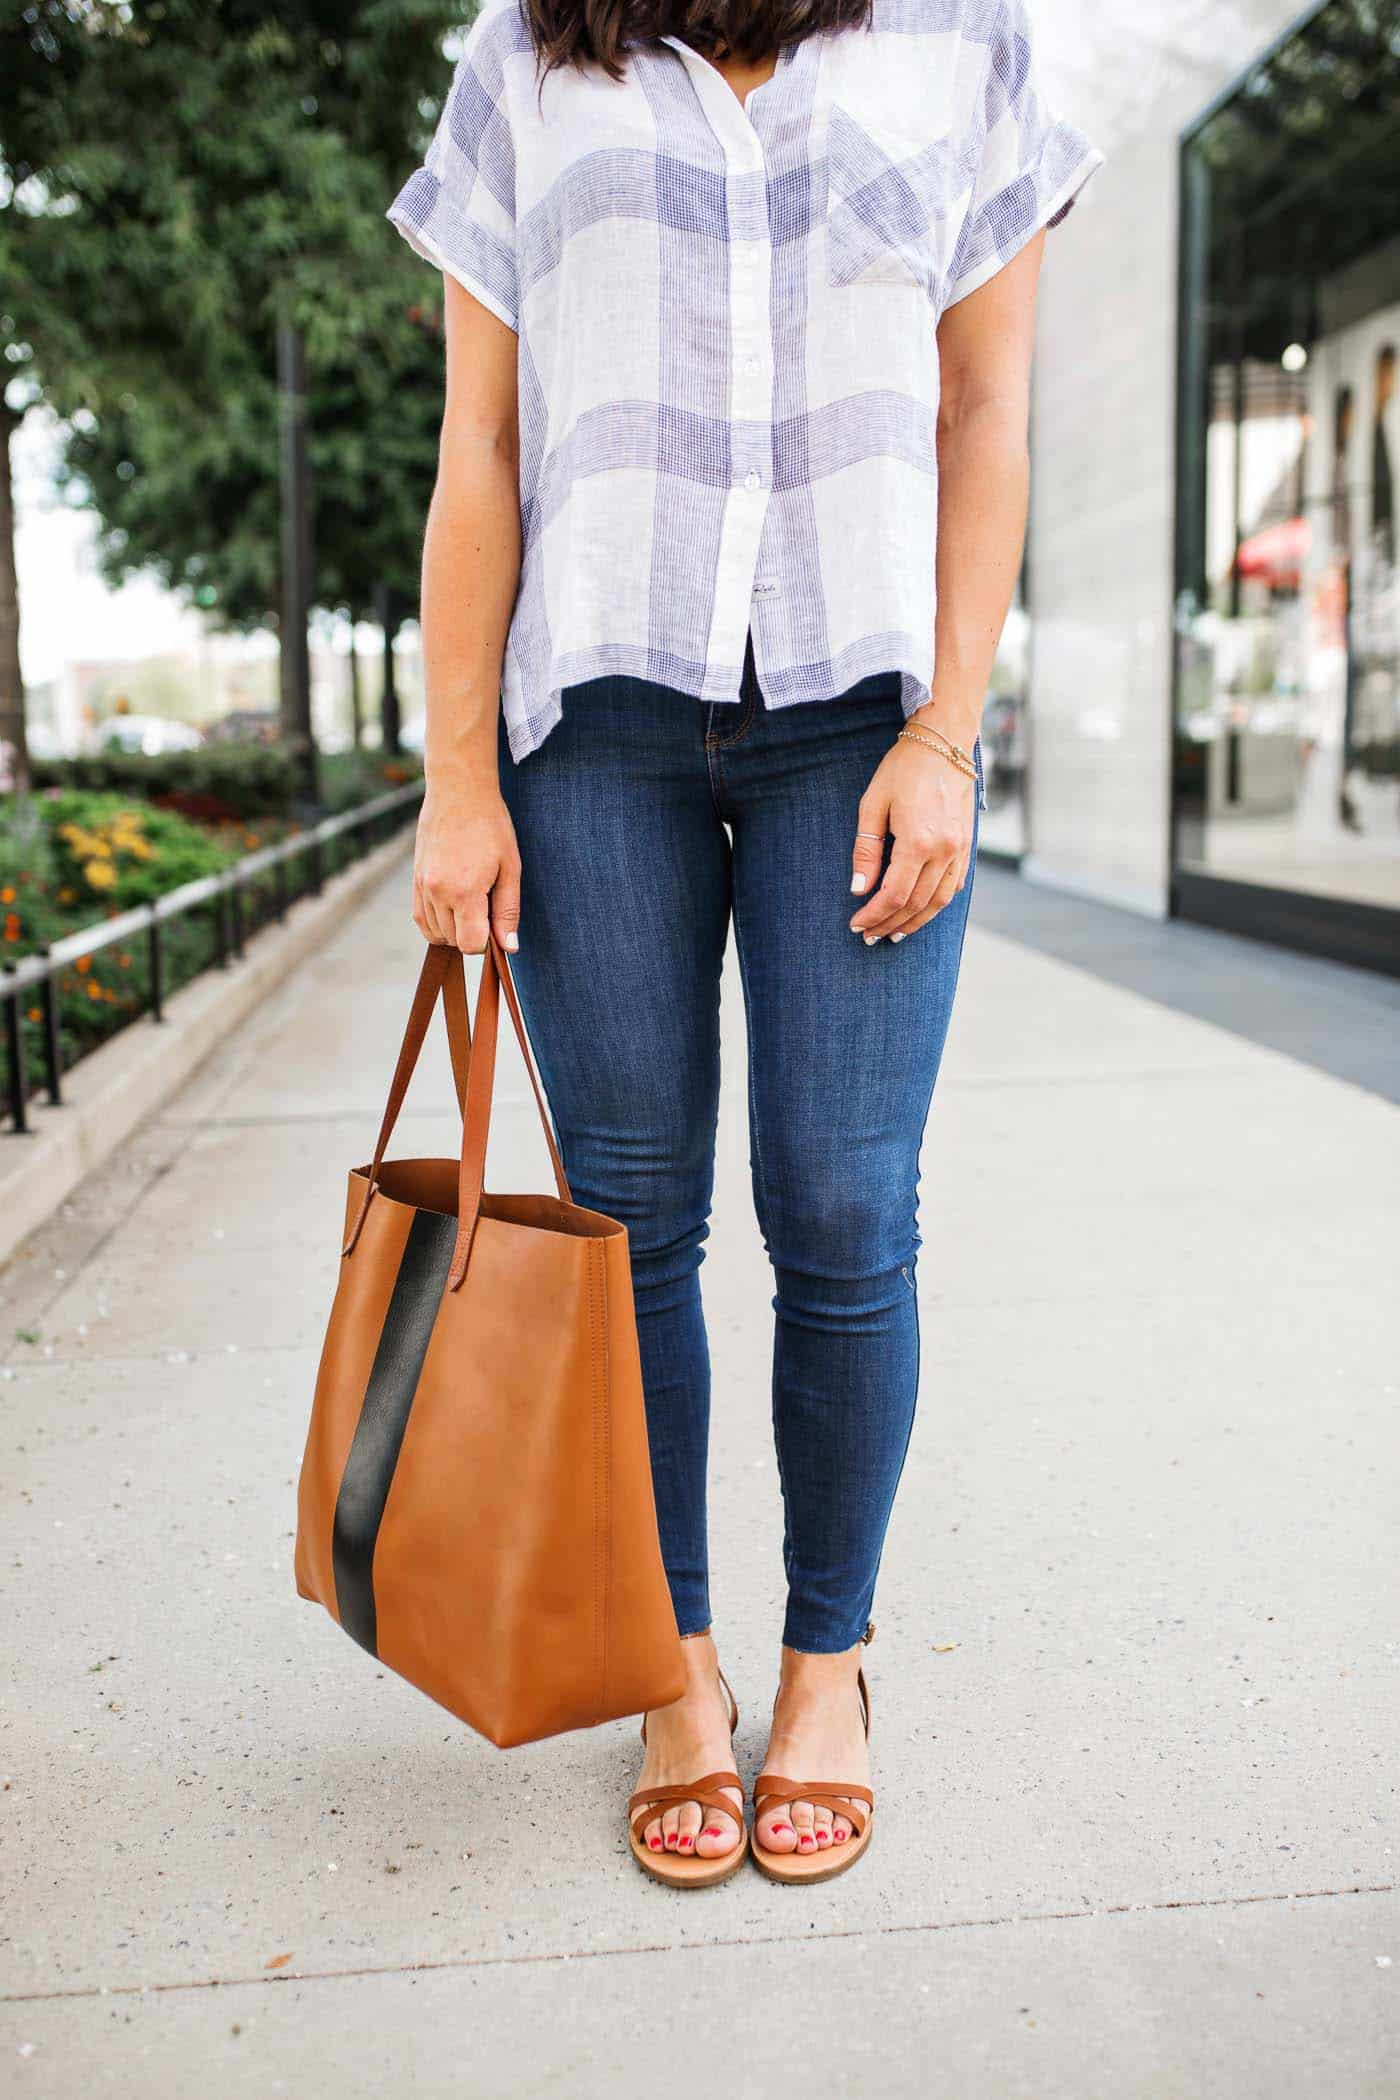 The best work bag from Madewell